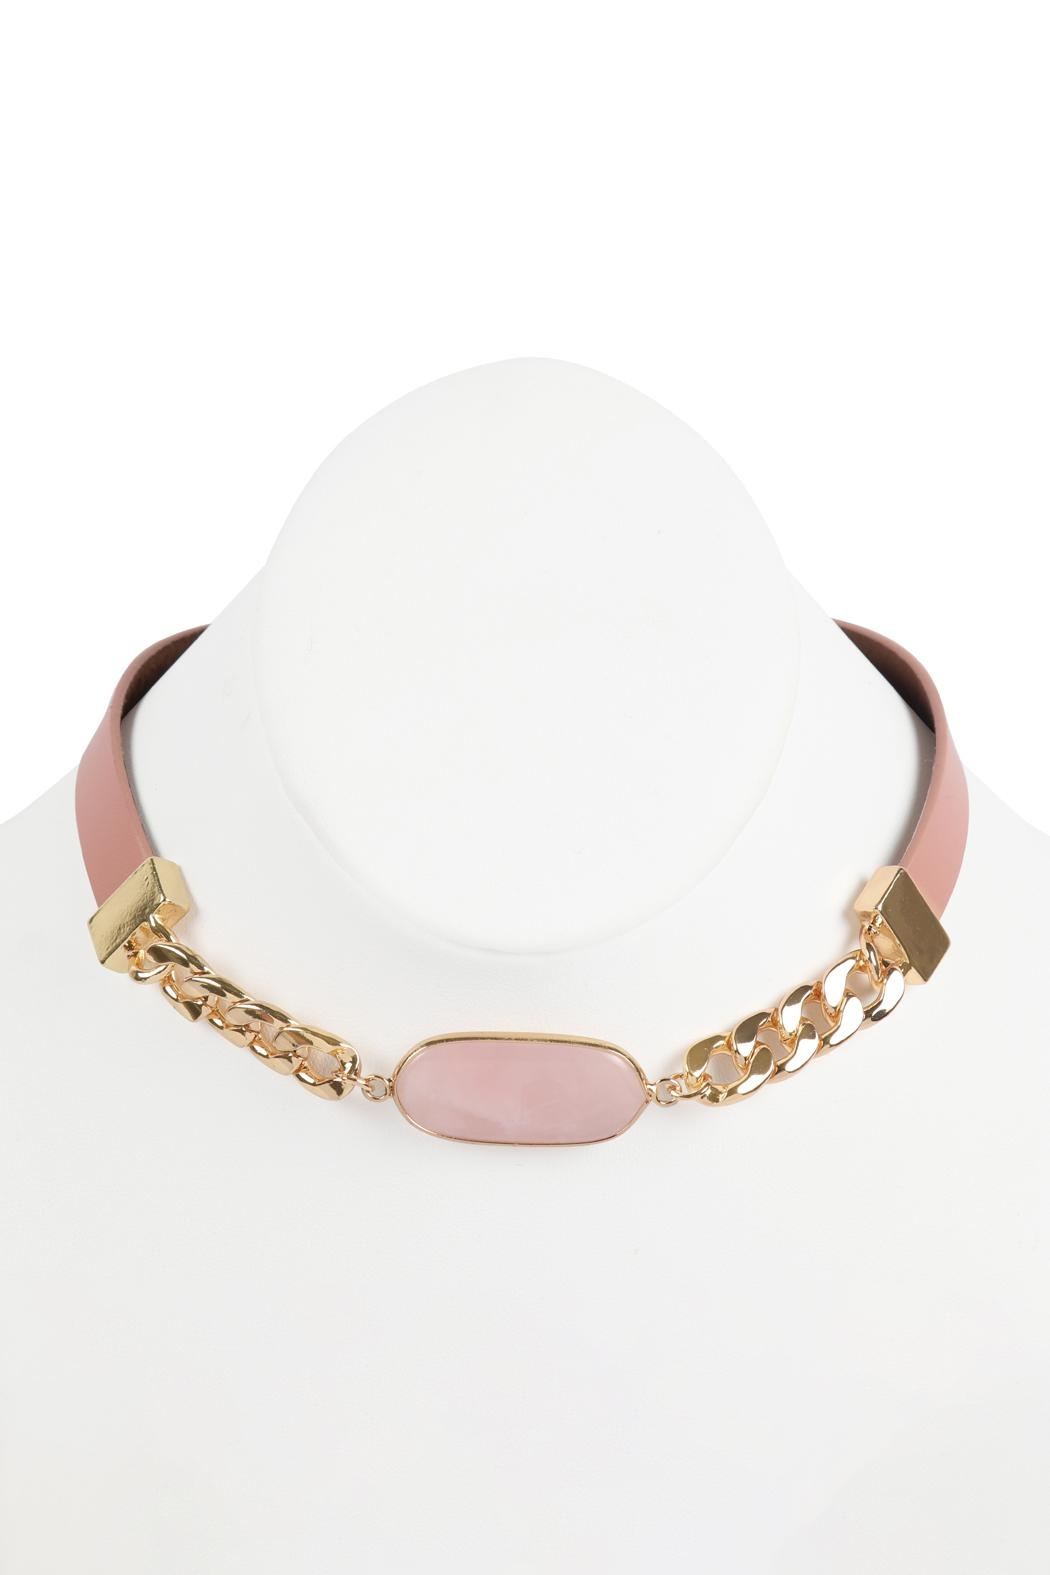 Riah Fashion Oval-Stone-Charm-Long-Chain-Leather Bracelet - Front Full Image